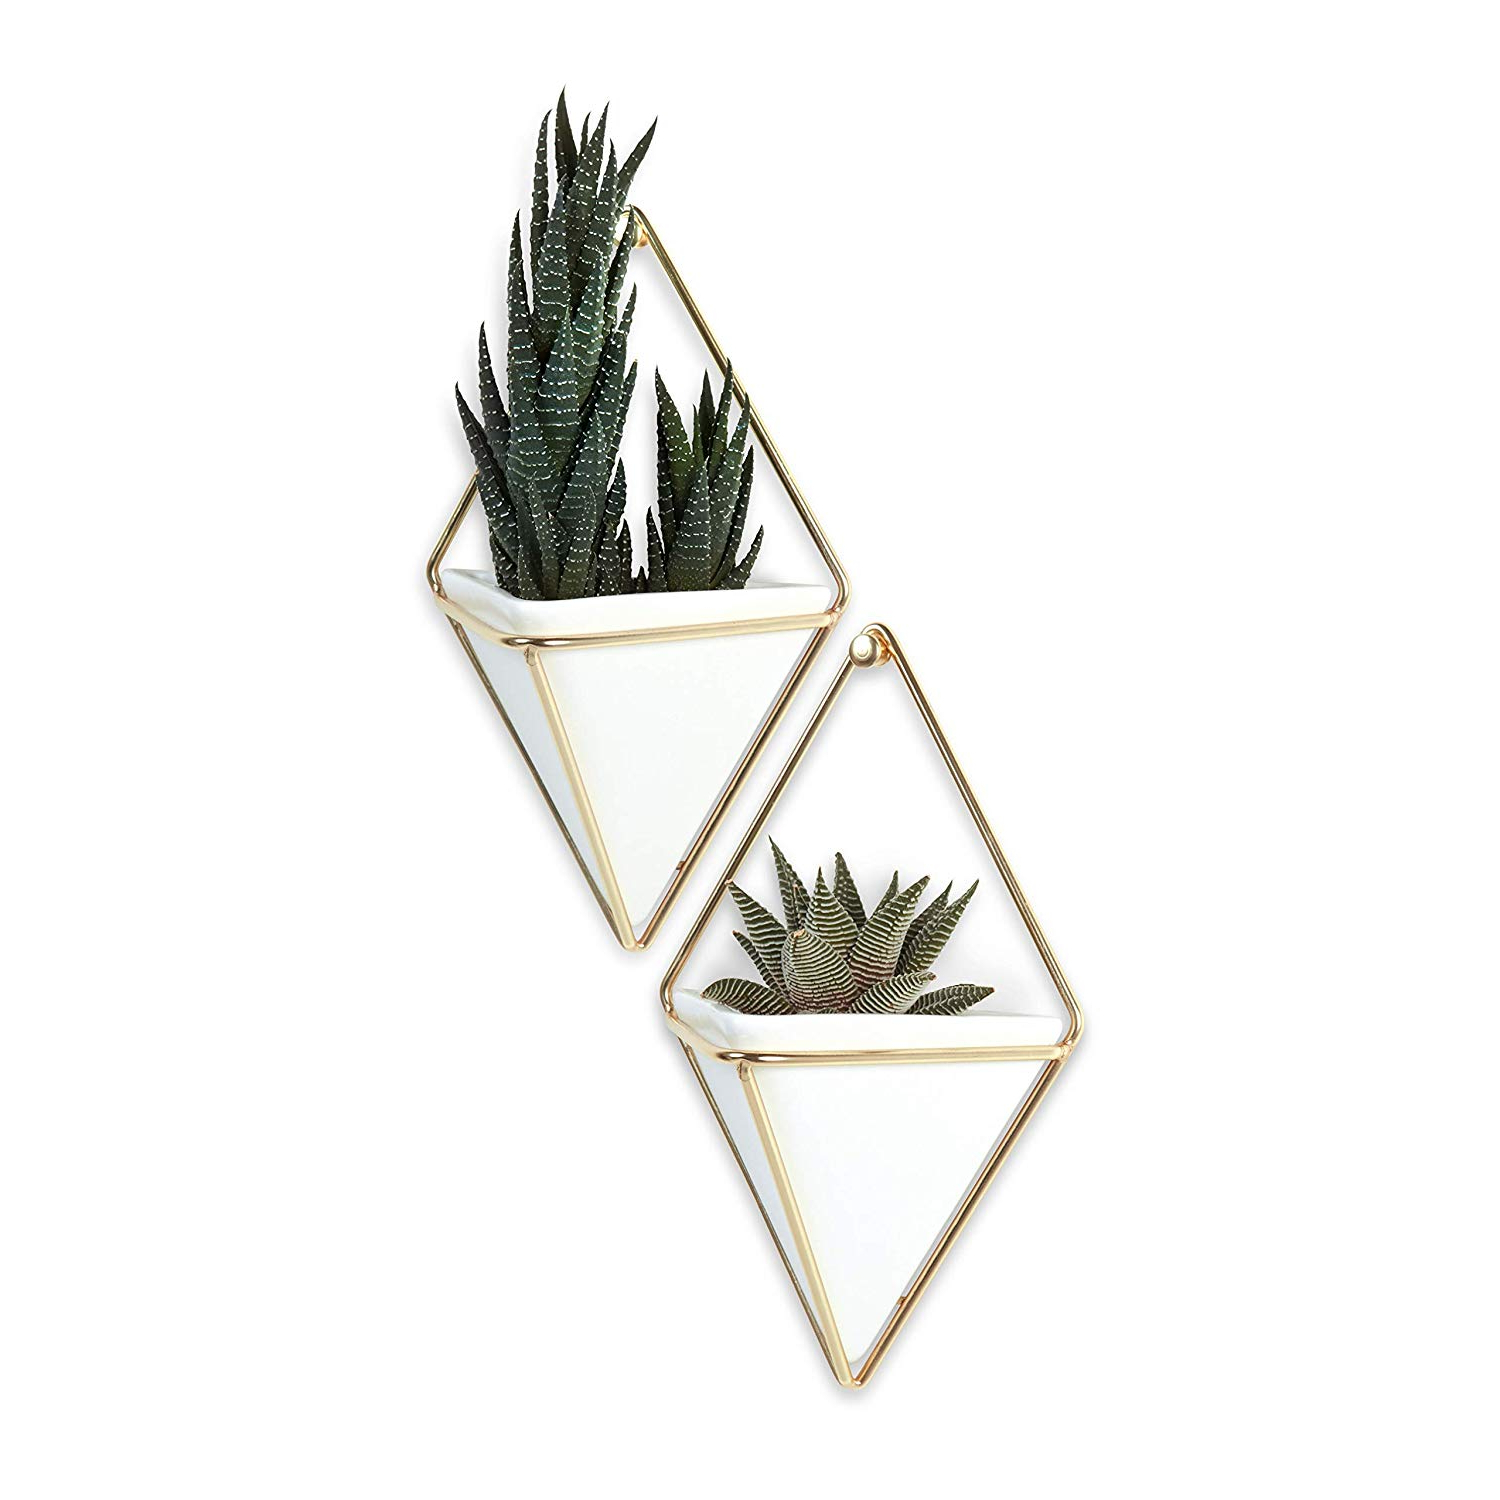 Recent Trigg Ceramic Planter Wall Decor Intended For Amazon: Umbra Trigg Hanging Planter Vase & Geometric Wall Decor (View 8 of 20)